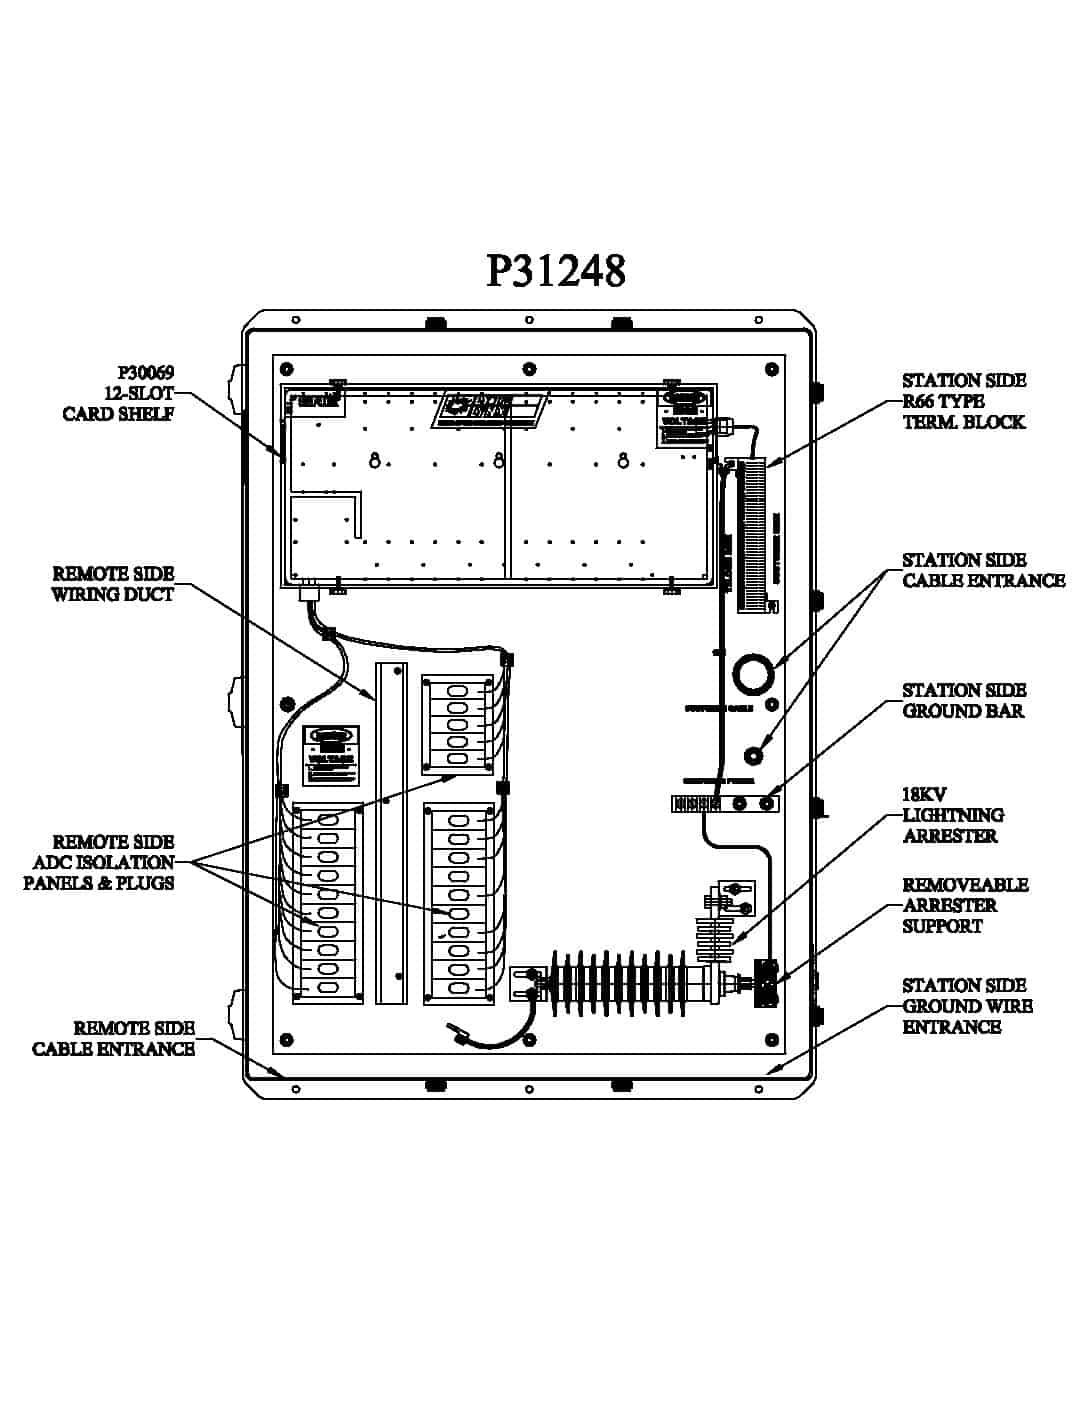 P31248 Turnkey Protection Packages – 12 slot PDF thumbnail